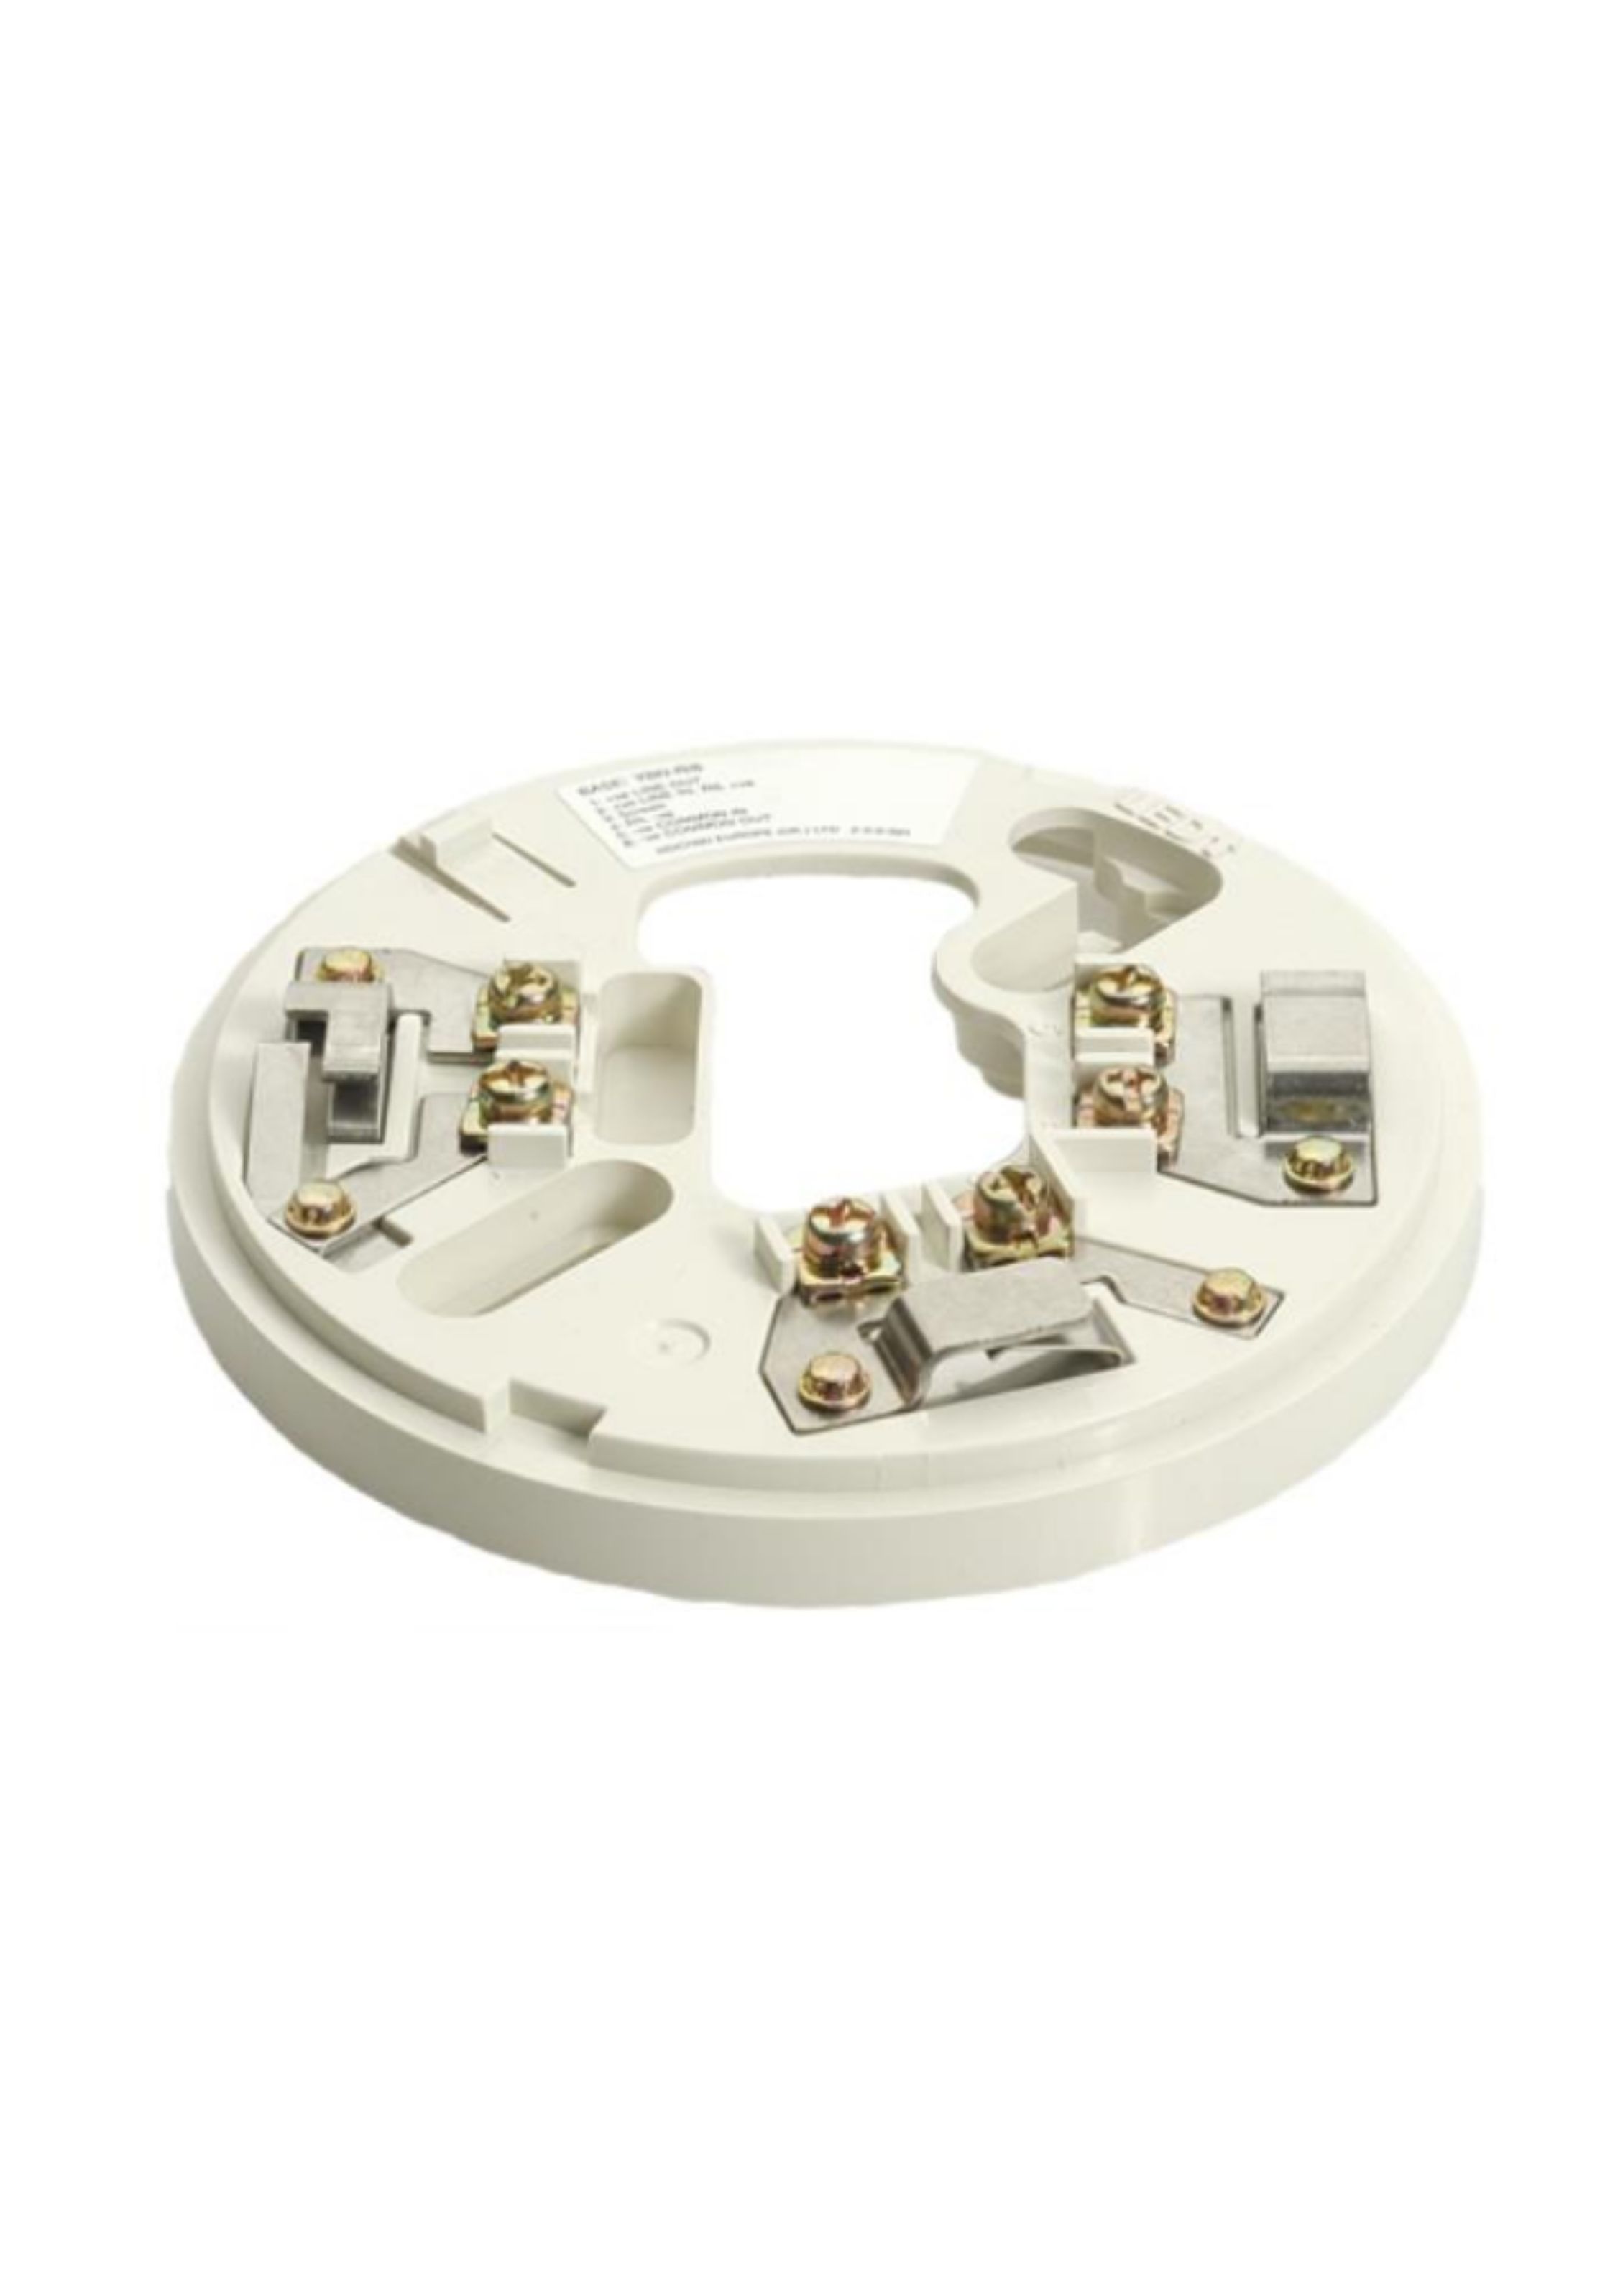 Conventional Mounting Base - white 1226150-20